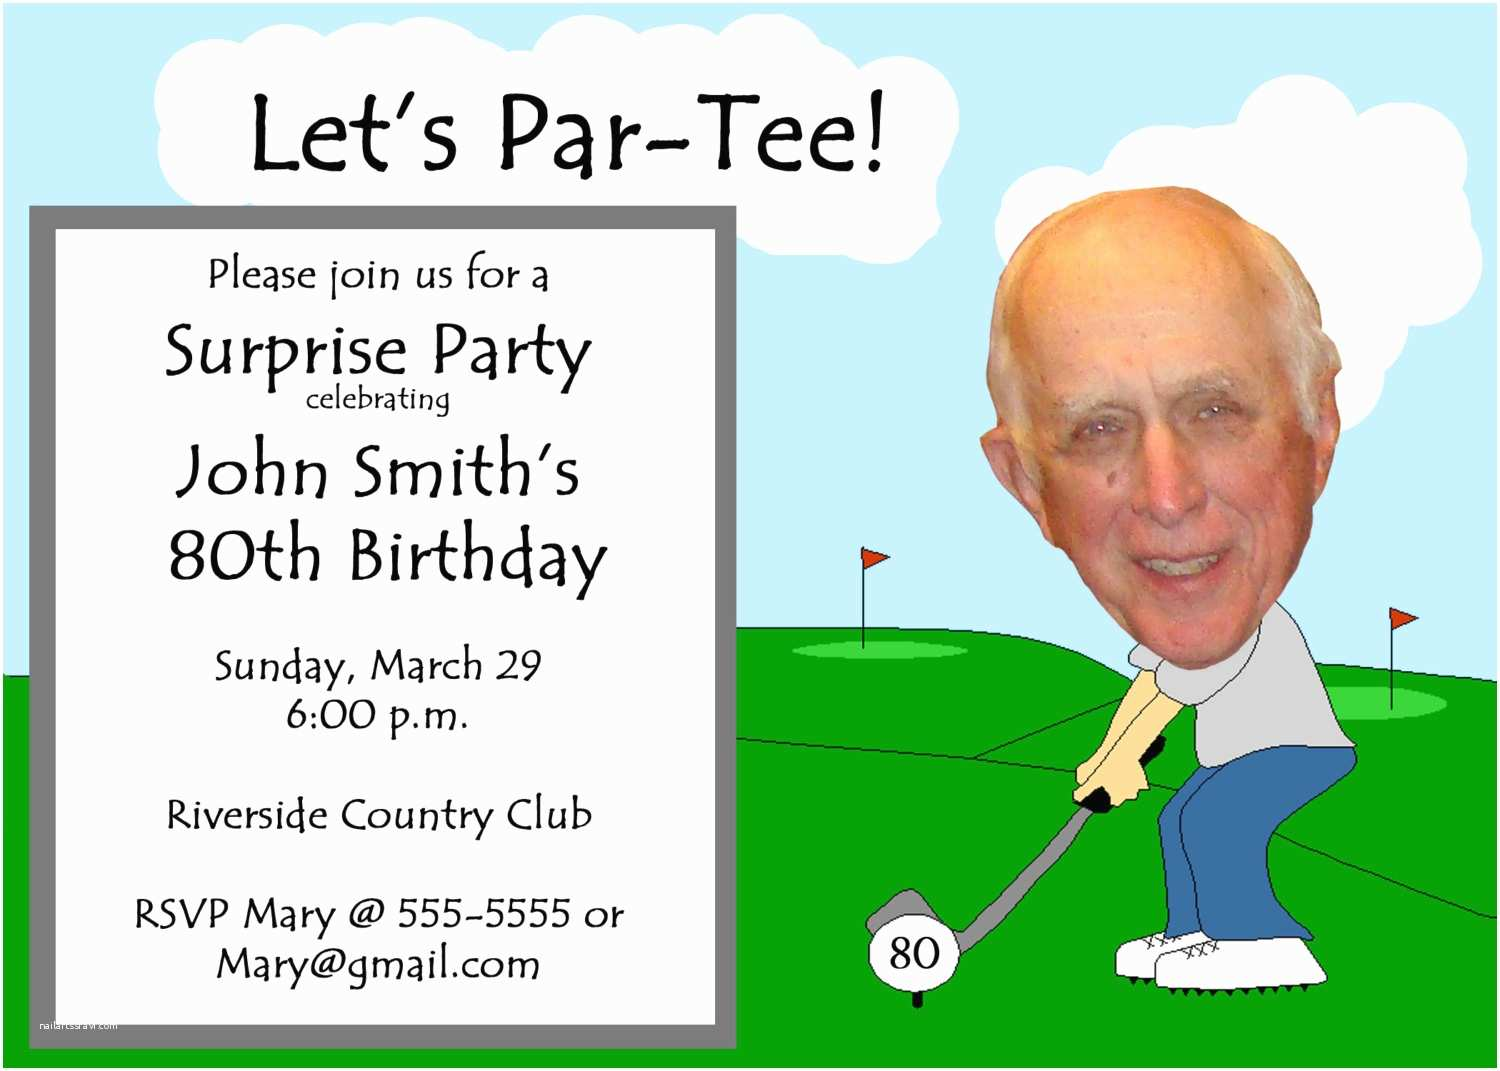 Funny Party Invitations 40th Birthday Invitations Wording Funny